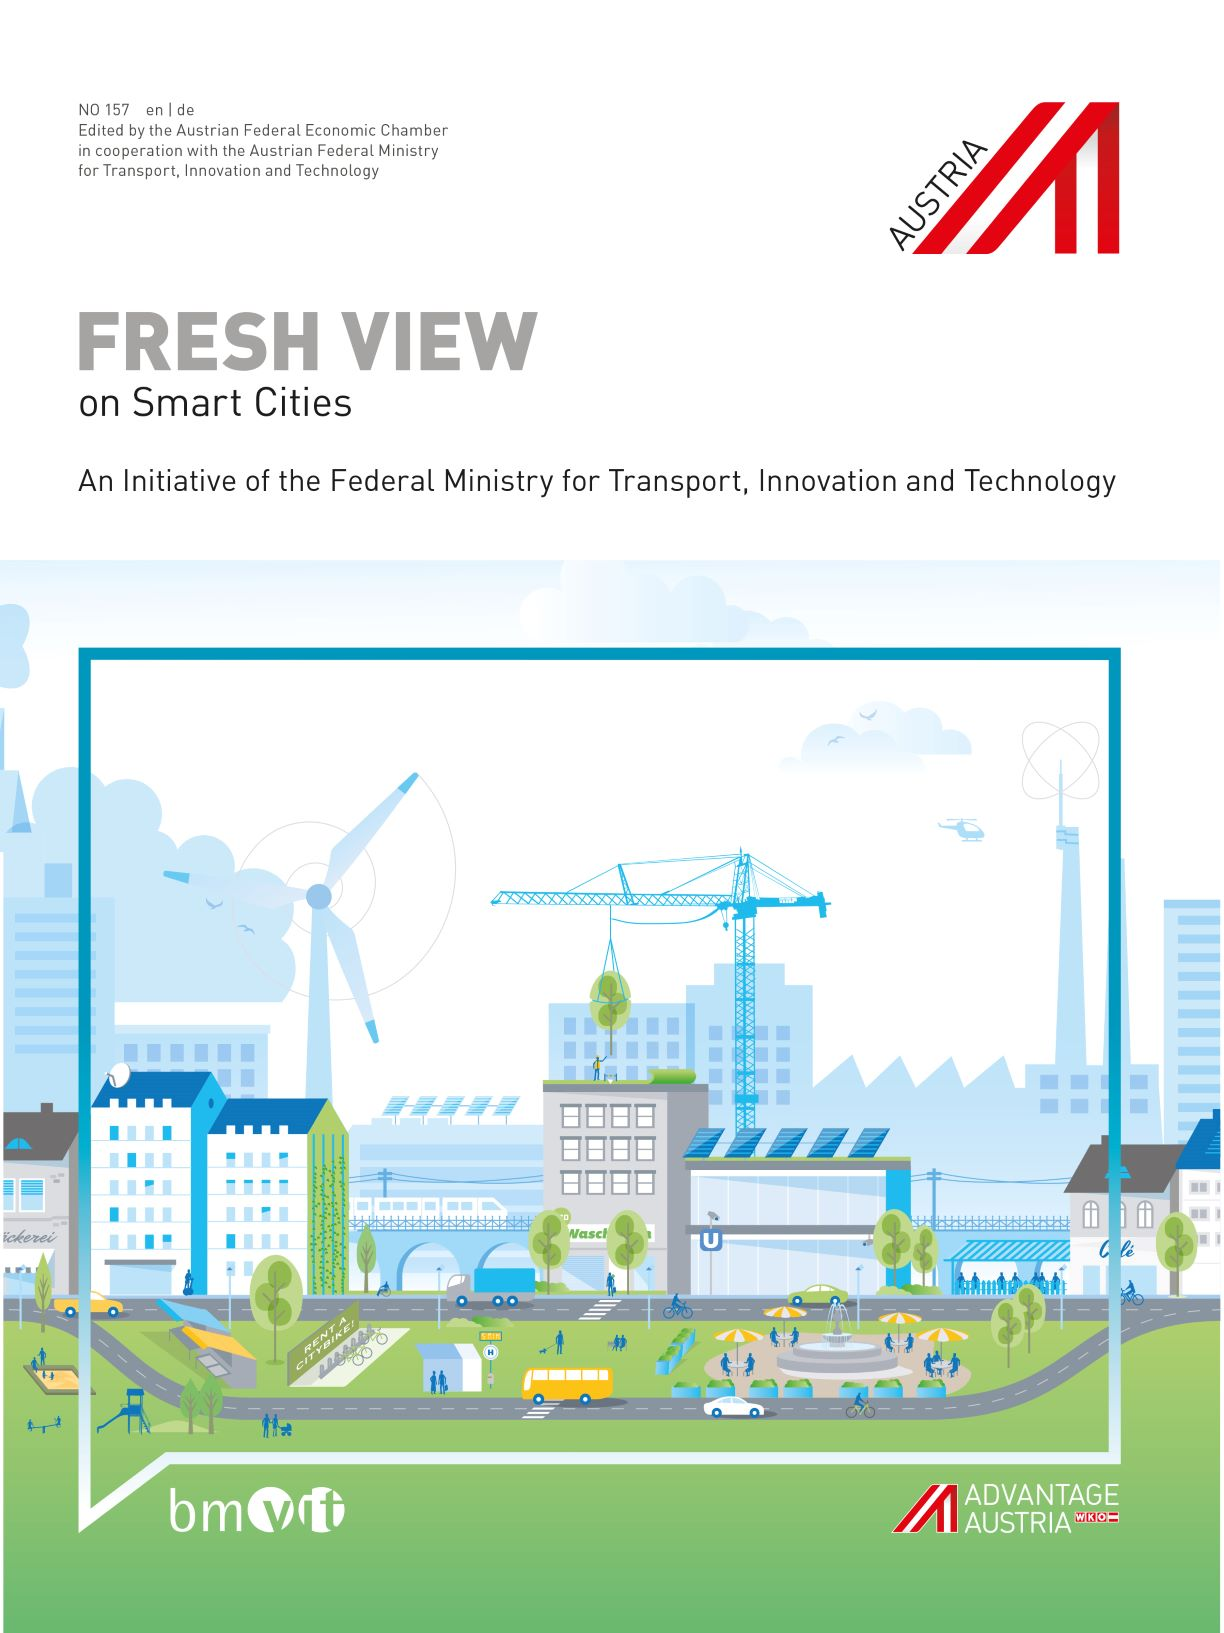 No. 157, Fresh View, Smart Cities, en | de